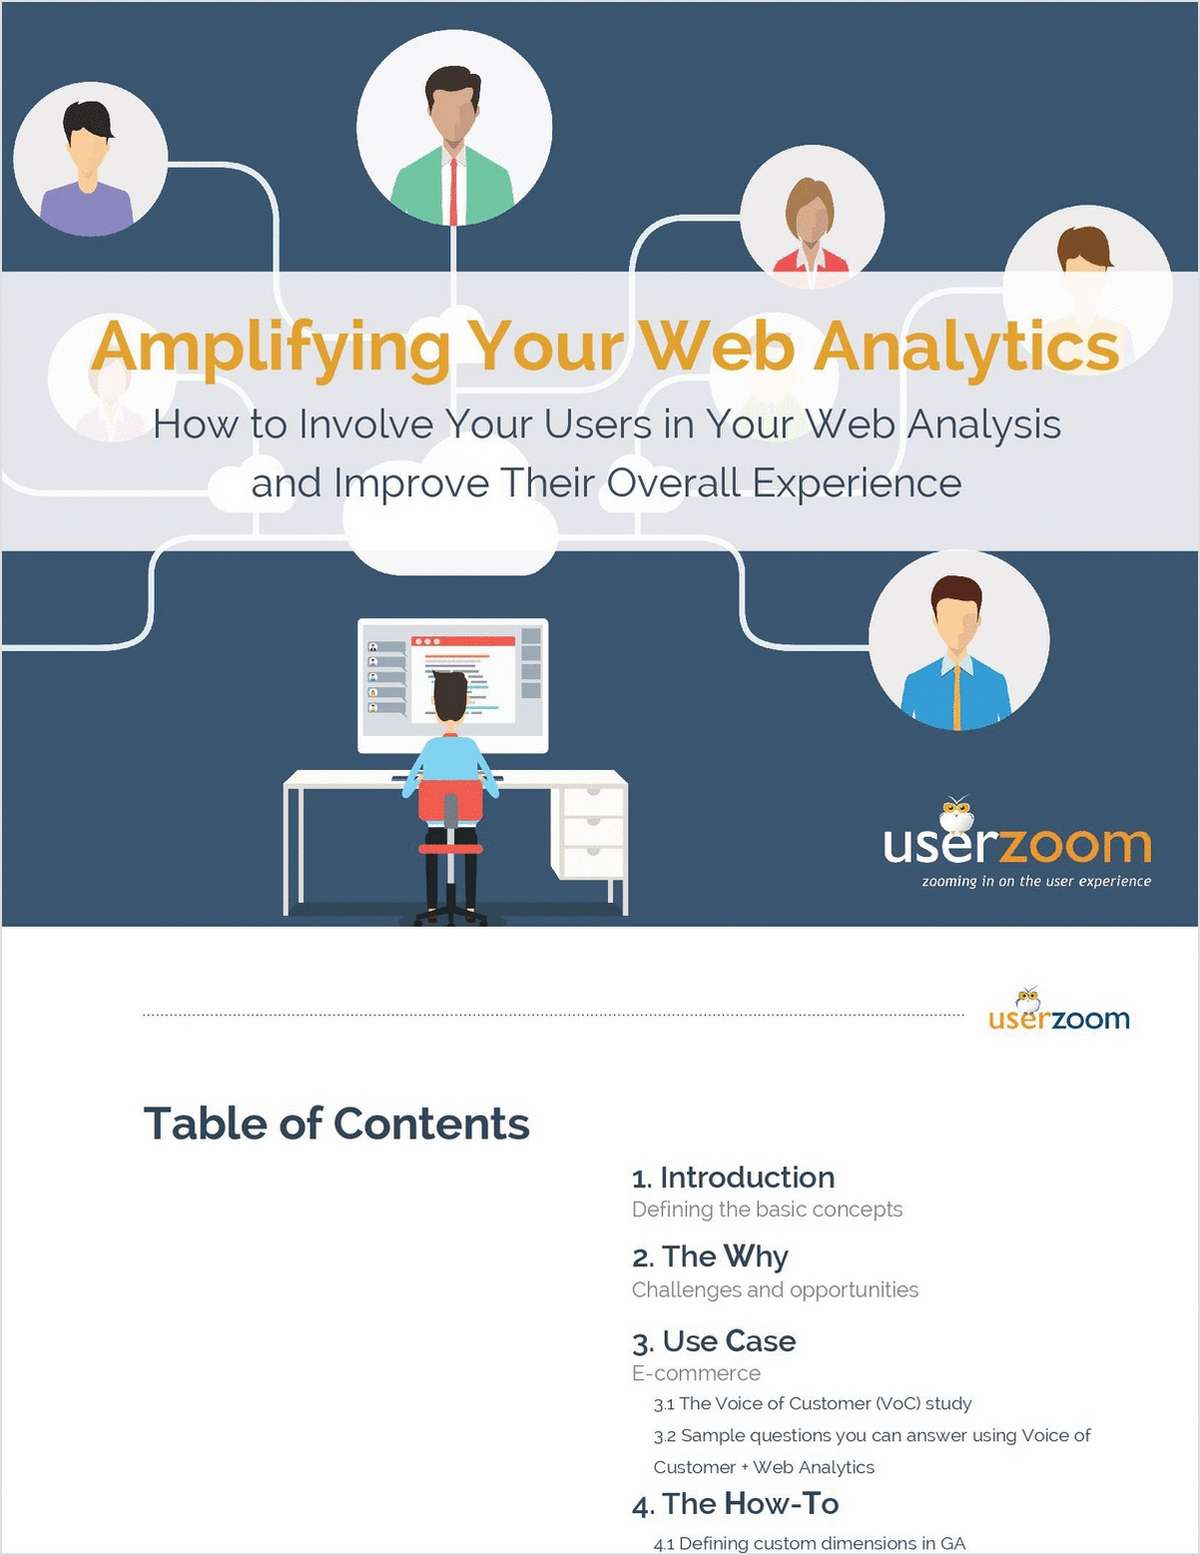 Ebook Download: Amplifying Your Web Analytics with Voice of the Customer Studies